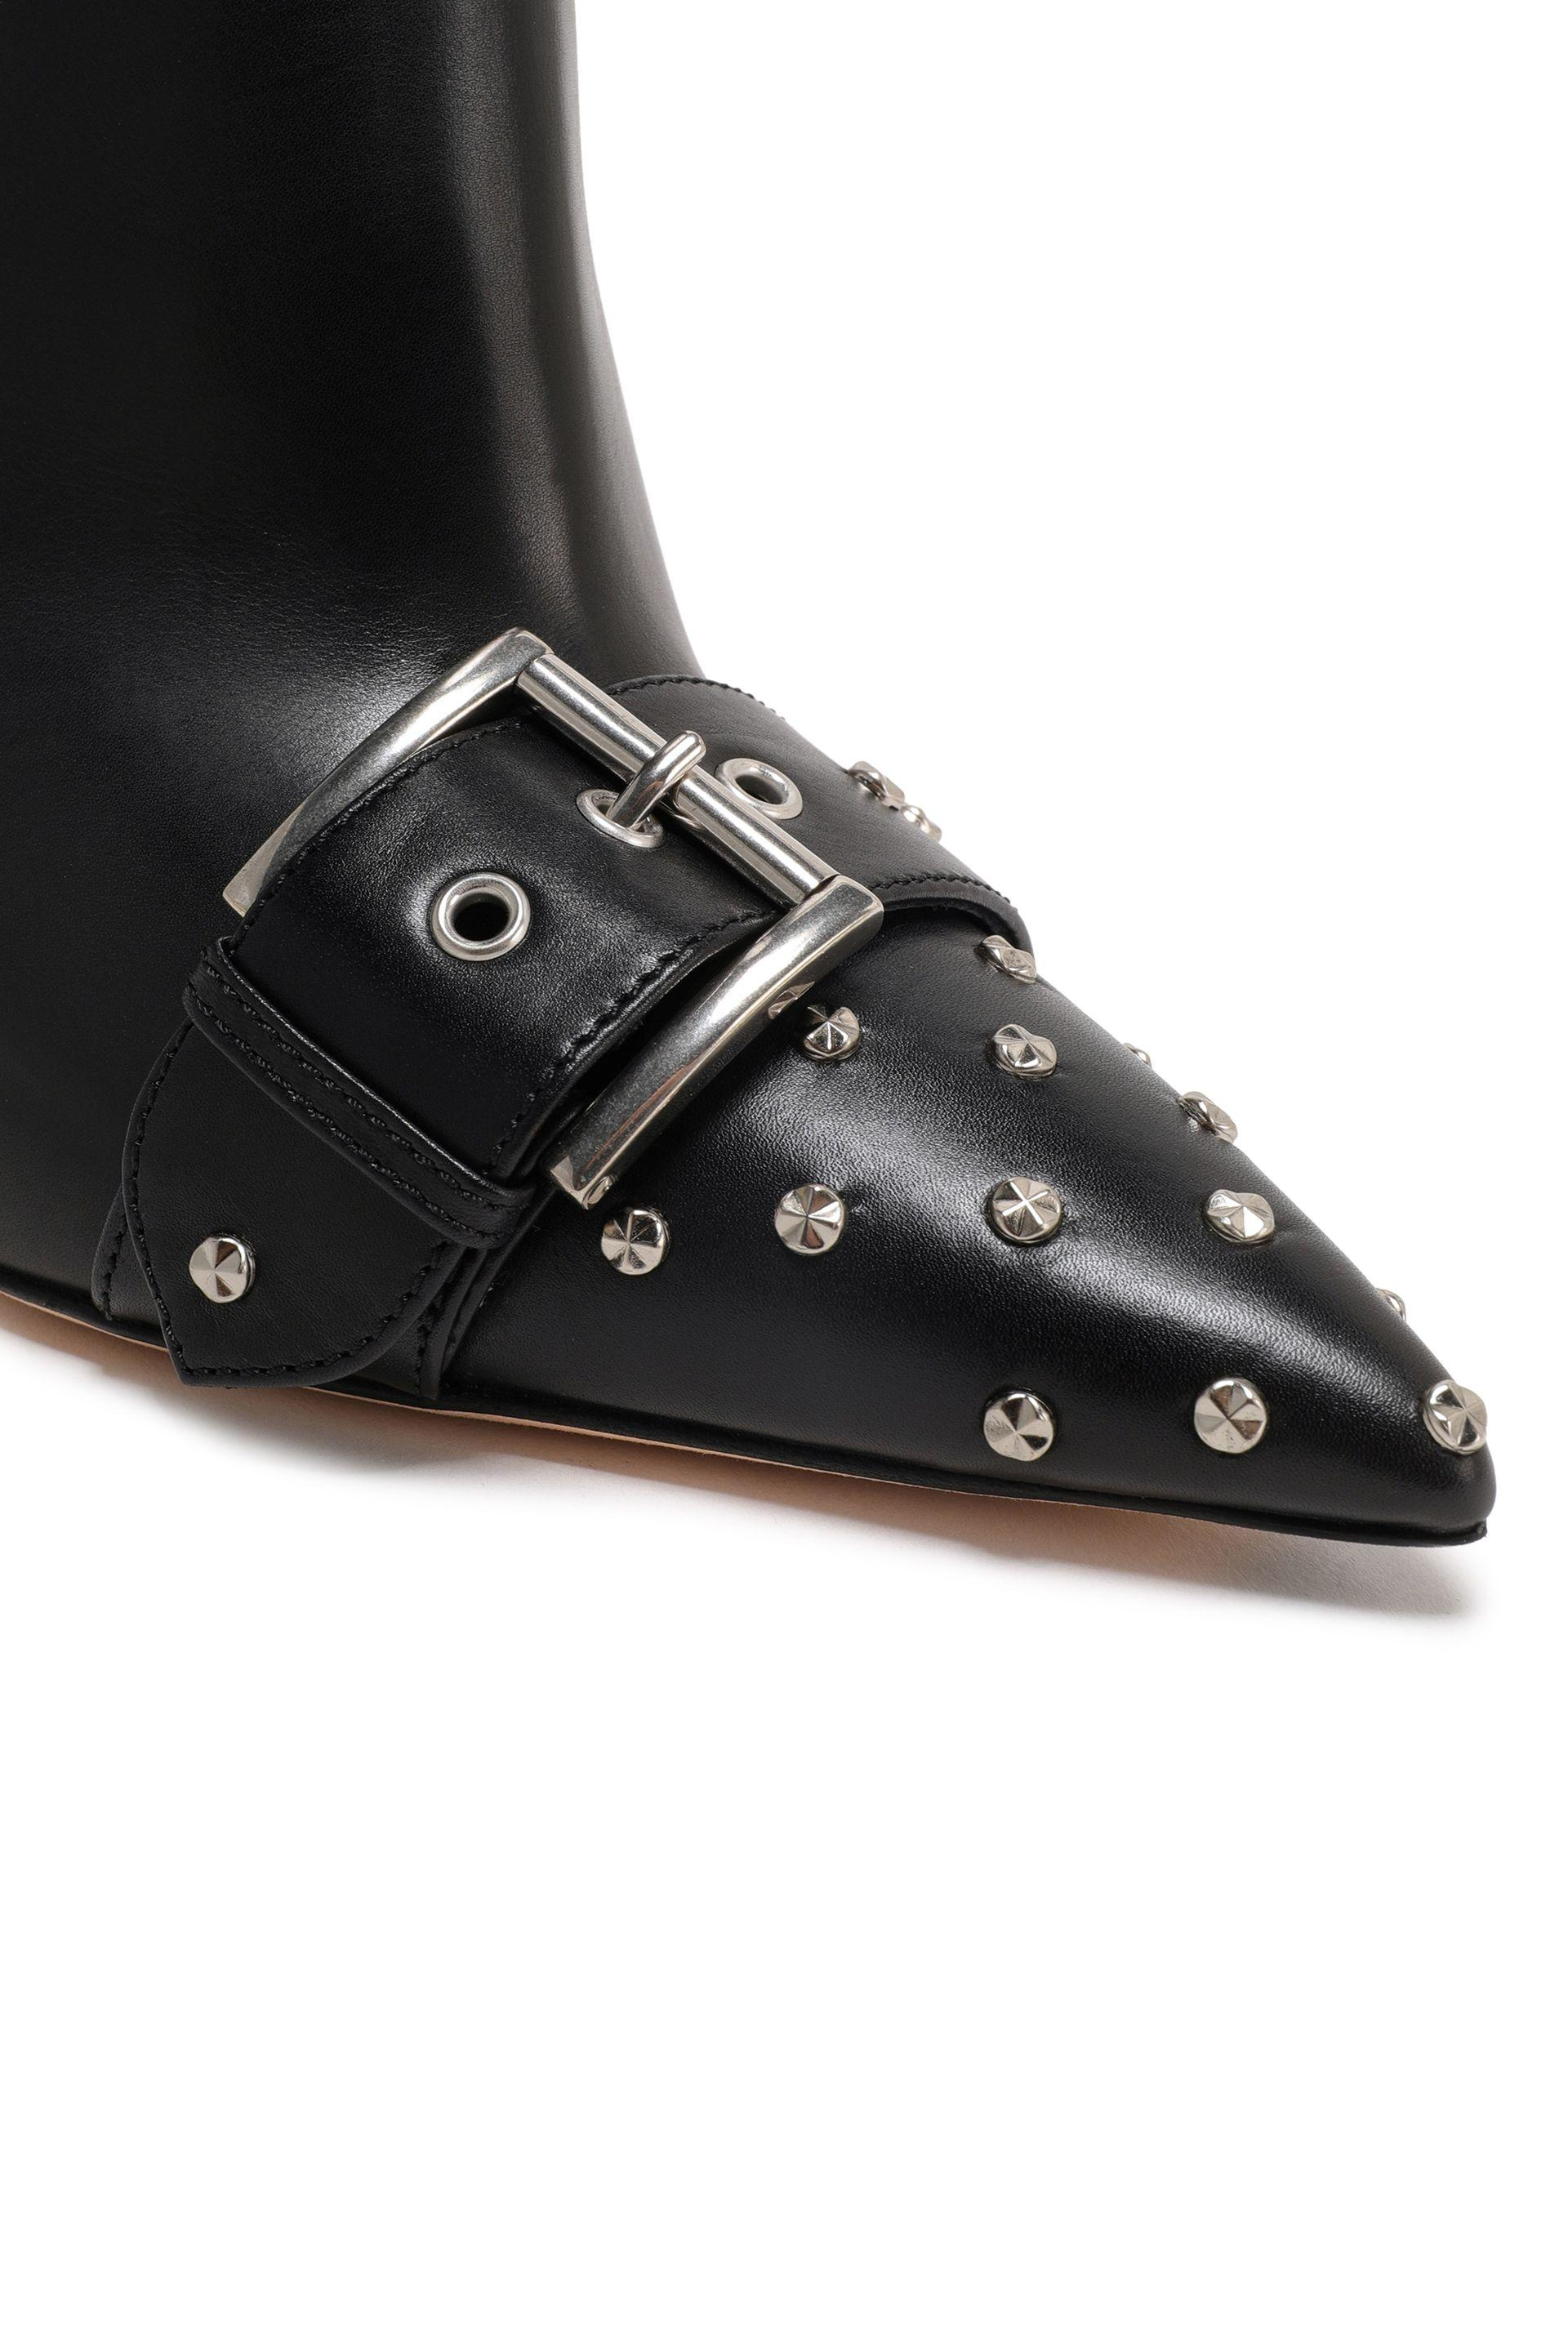 Alexander McQueen Fringed Studded Leather Ankle Boots Black